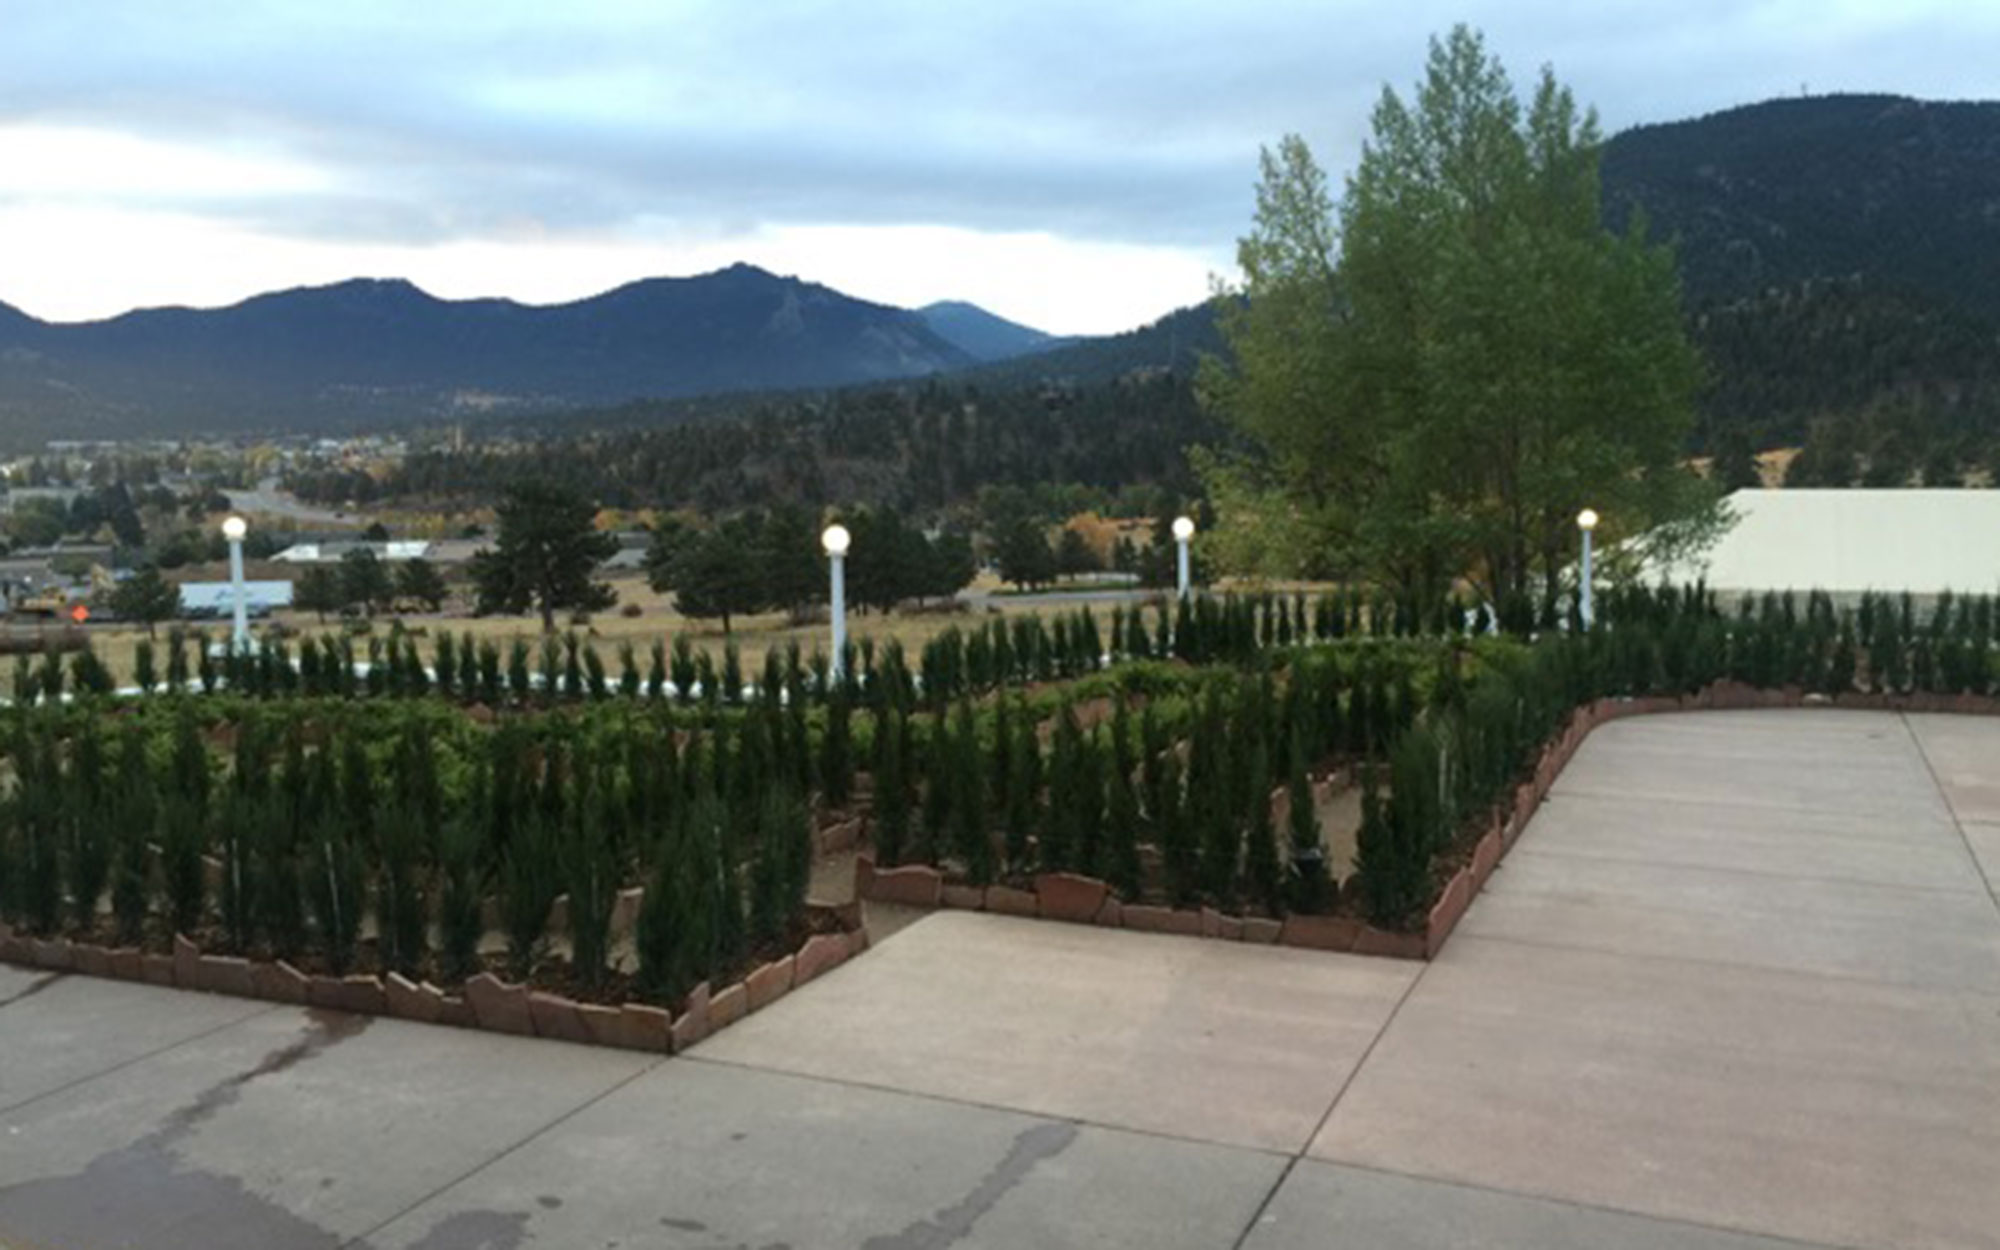 The Stanley Hotel's new hedge maze